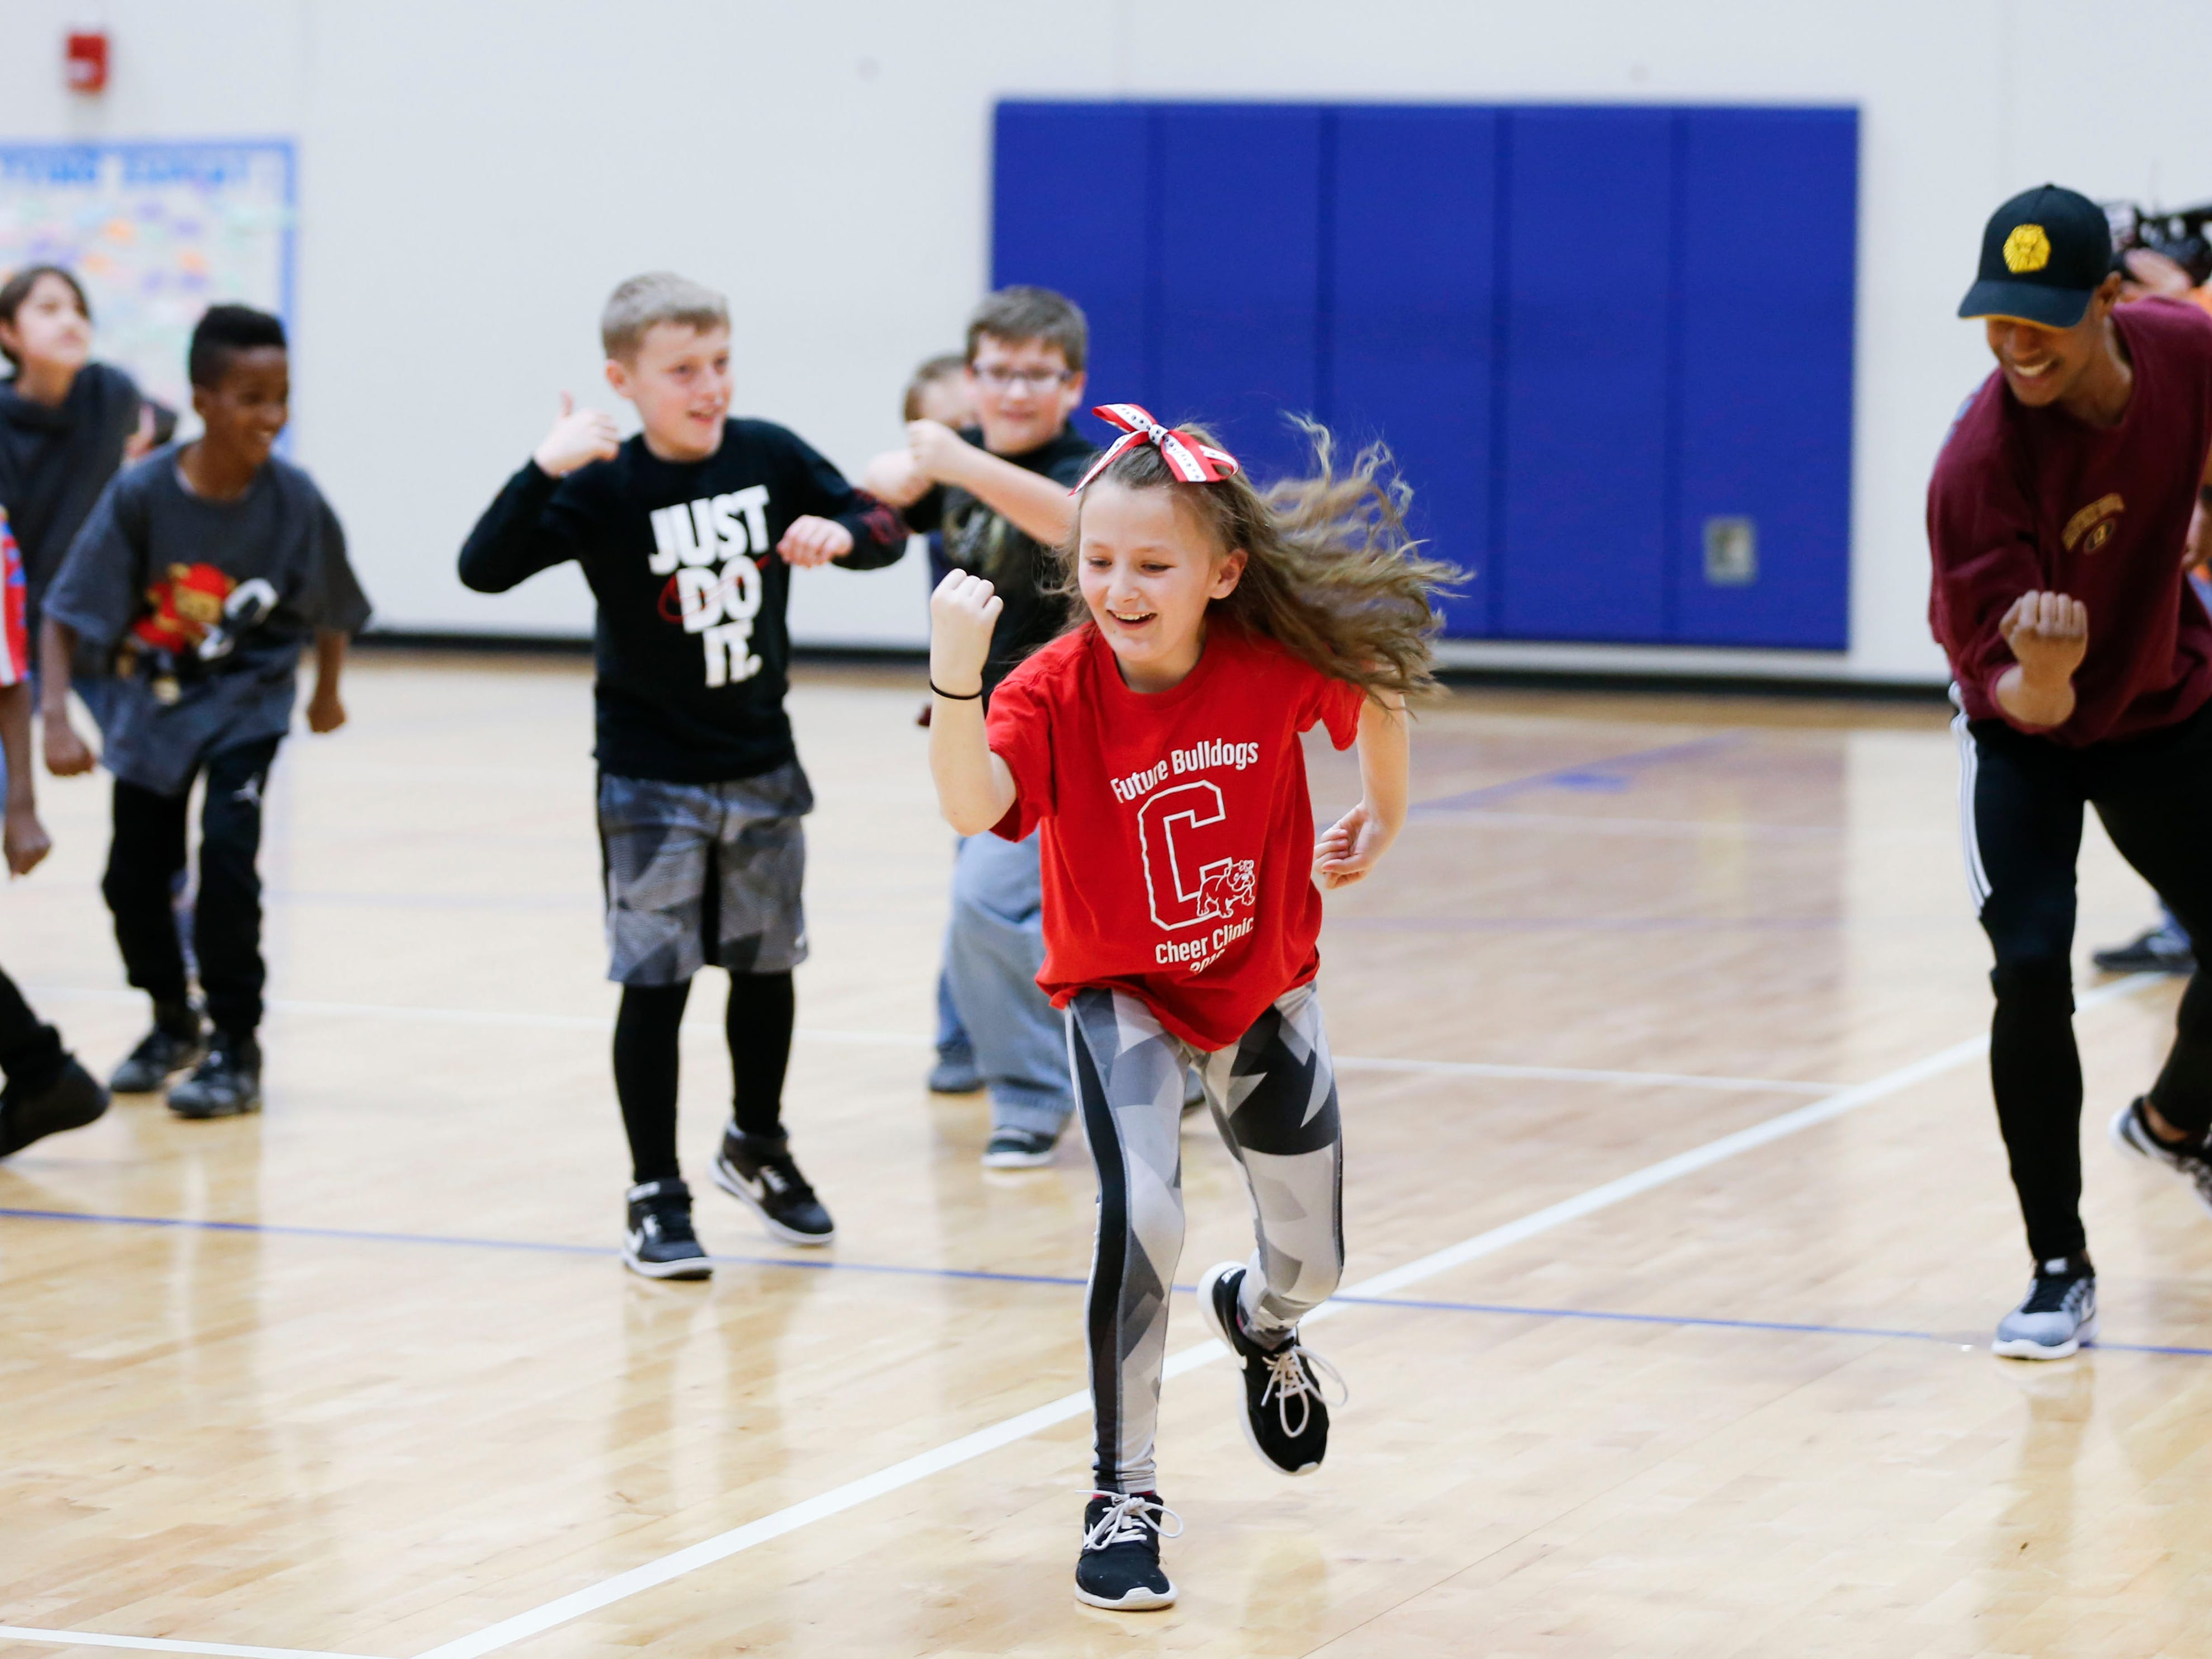 """Fremont Elementary School student Victory Stine performs dance moves taught by cast members from """"The Lion King"""" on Tuesday, March 5, 2019."""